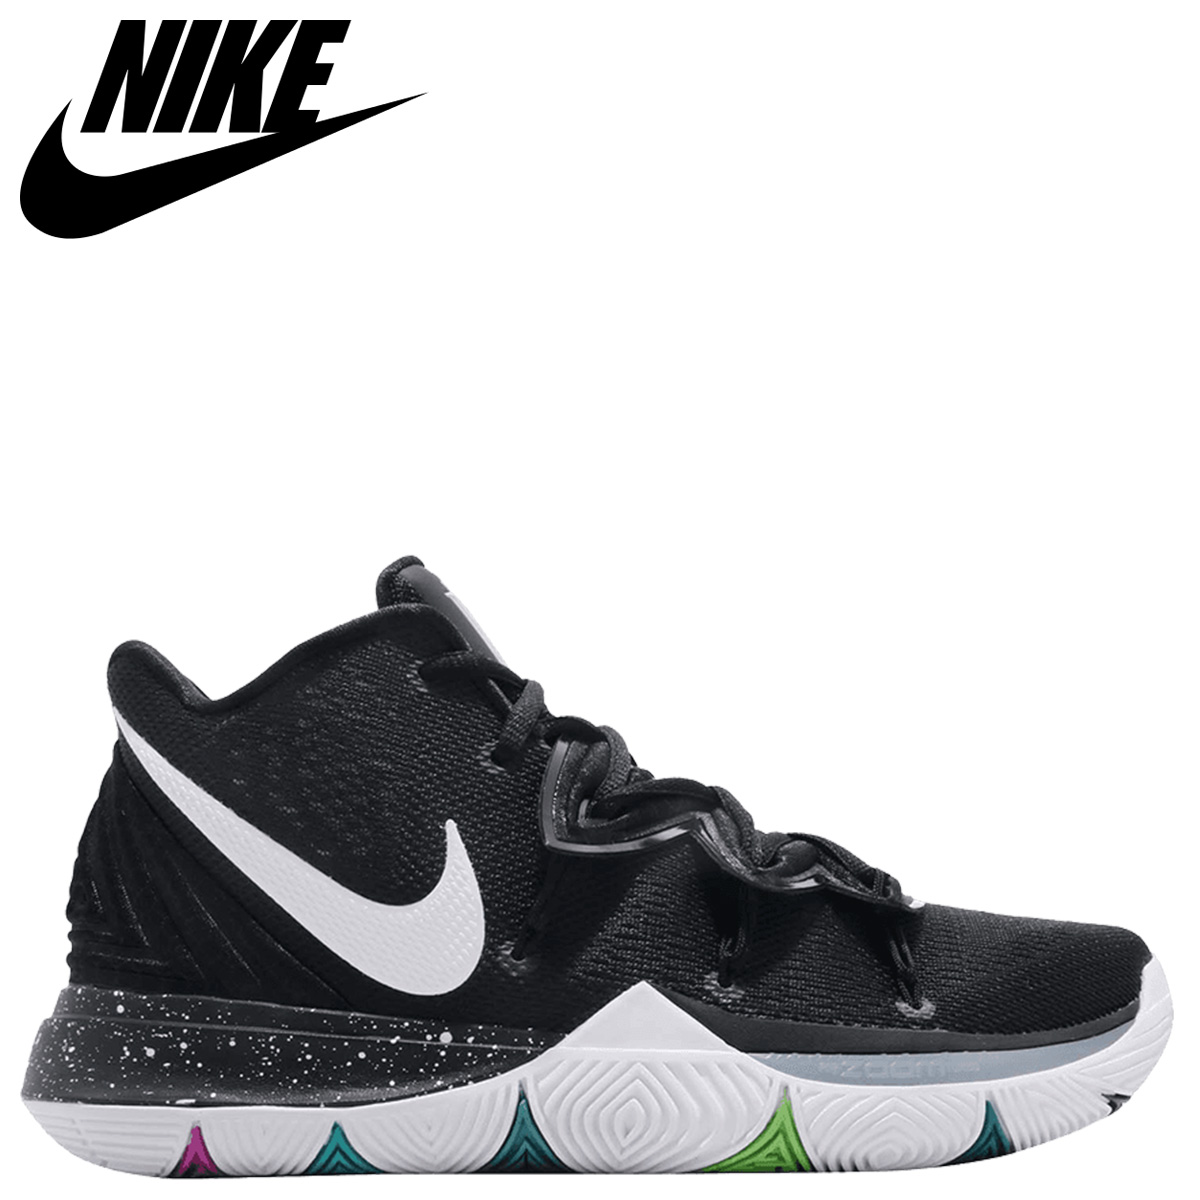 buy online 3c7ee a4521 Nike NIKE chi Lee 5 sneakers men KYRIE 5 BLACK MAGIC black AO2919-901